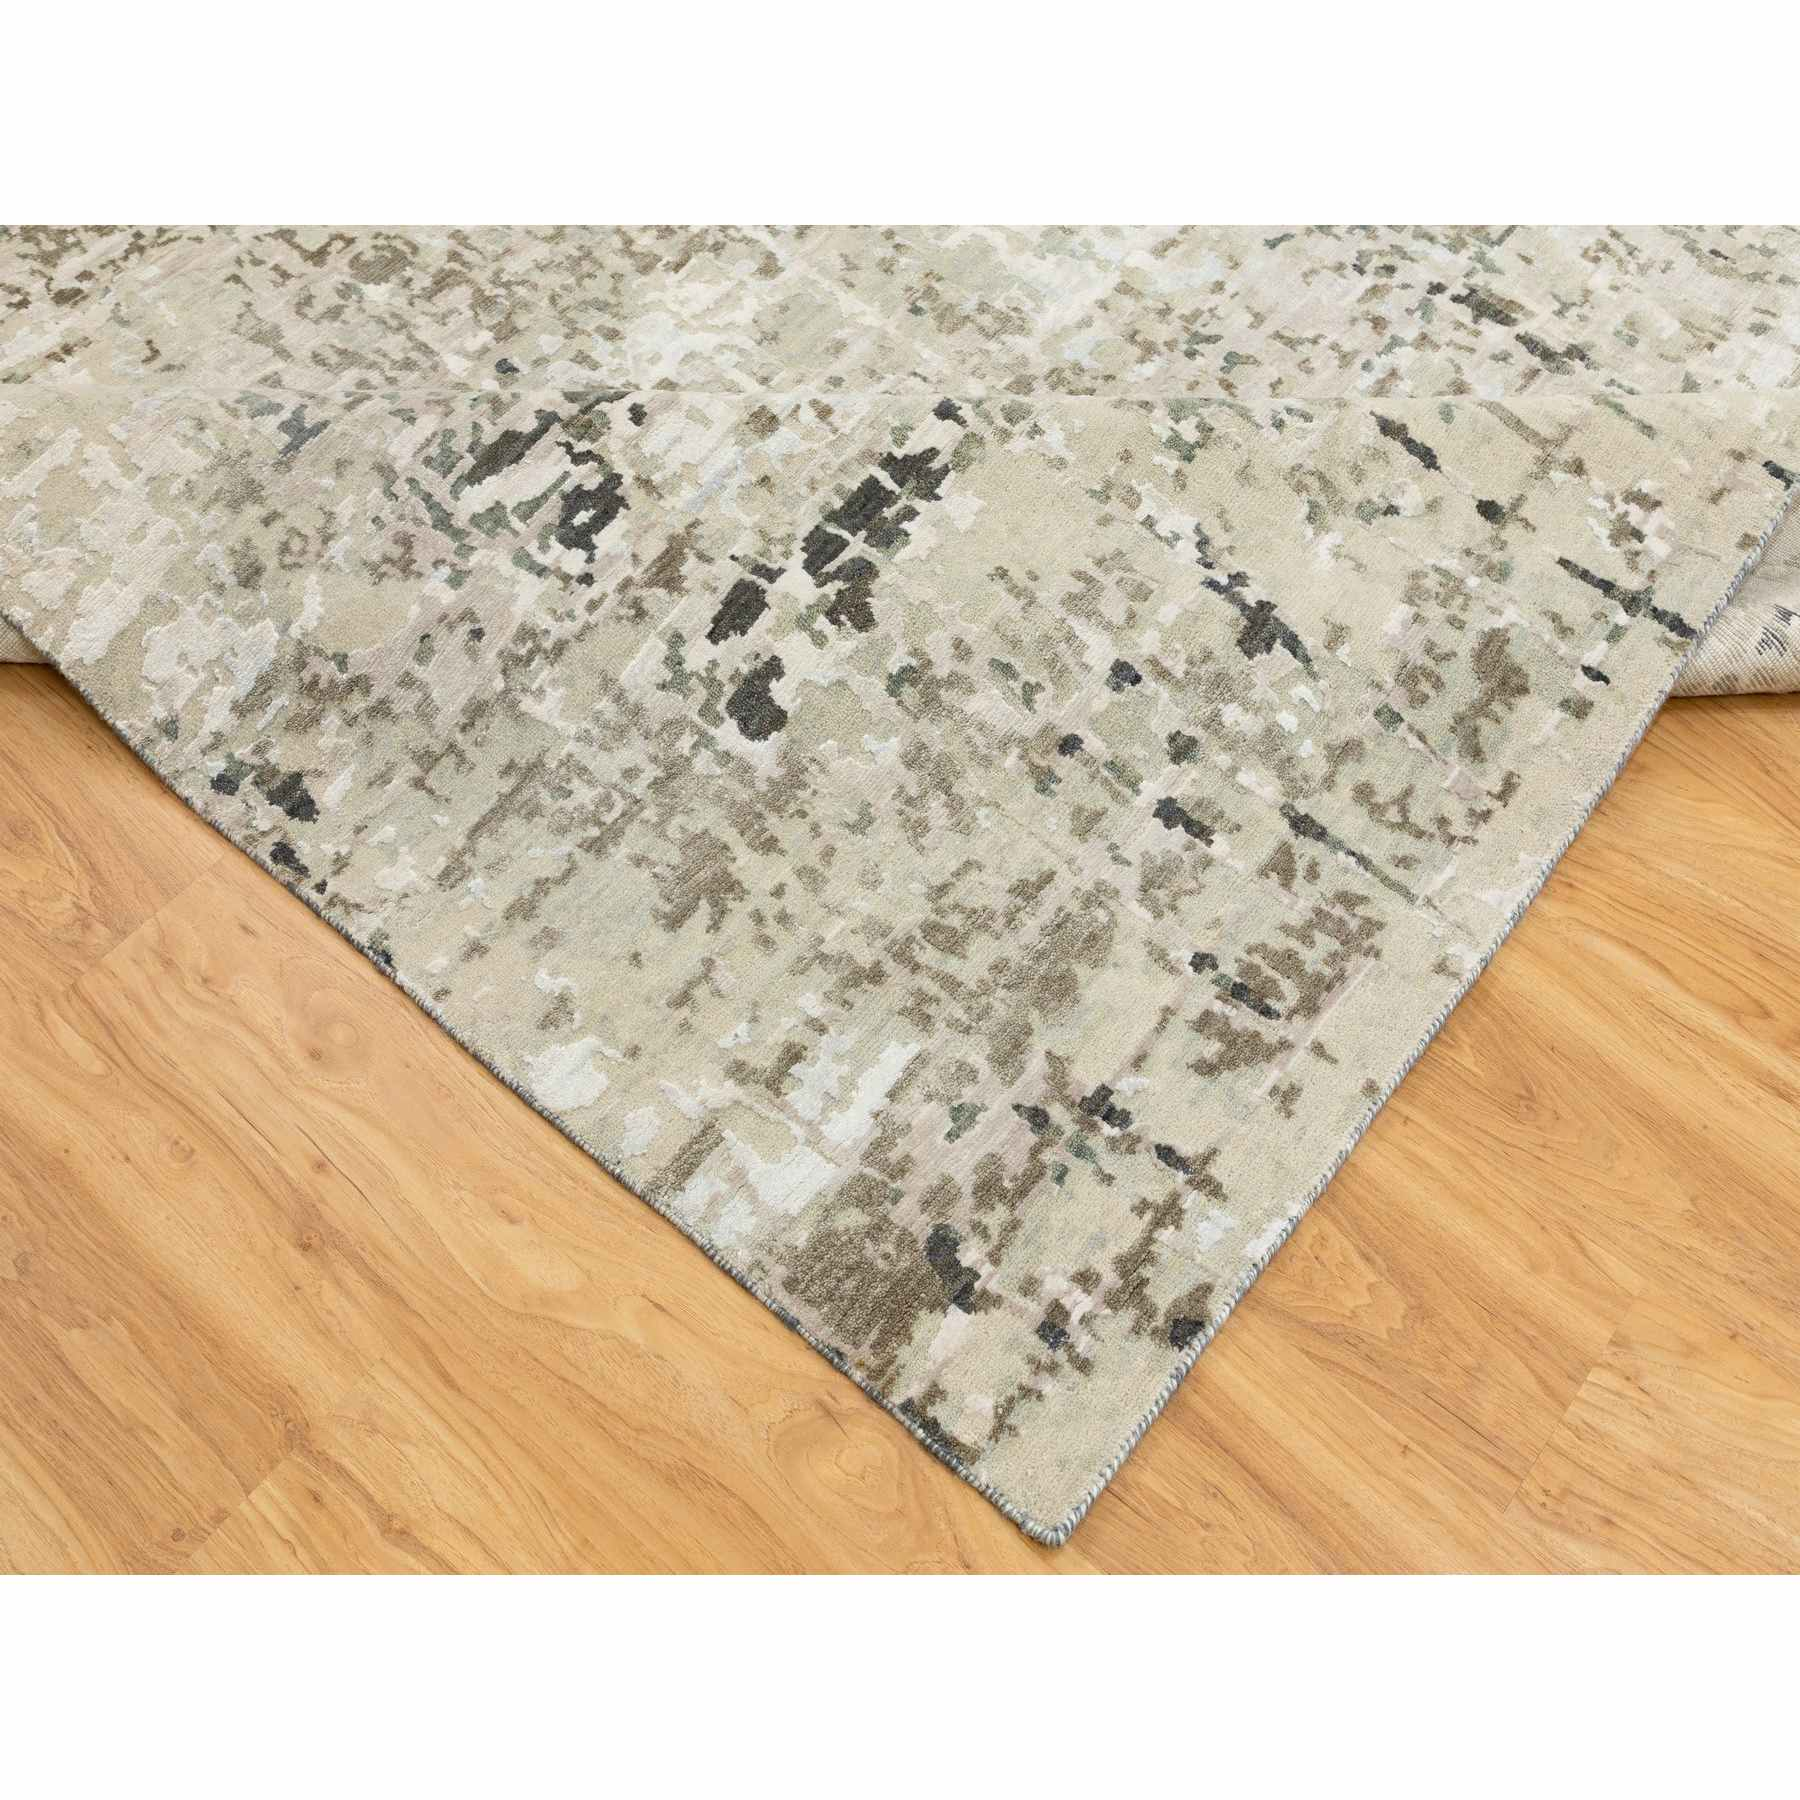 Modern-and-Contemporary-Hand-Knotted-Rug-292700